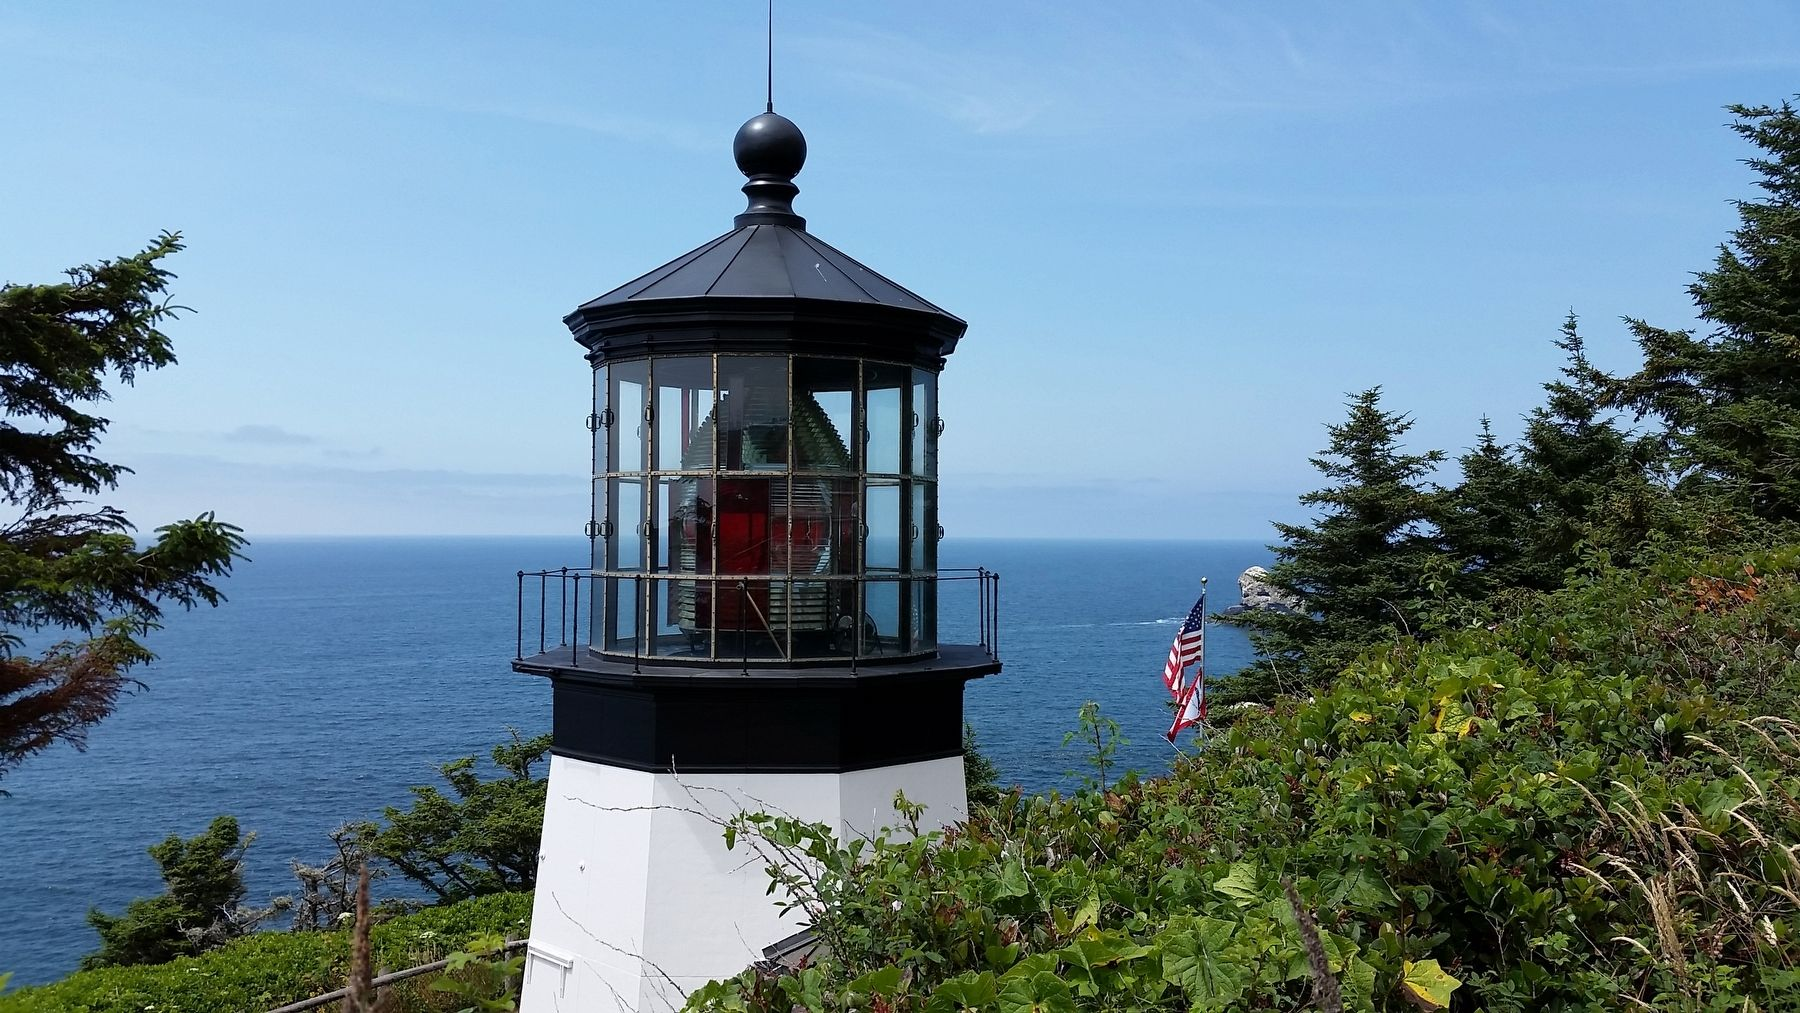 Cape Meares Lighthouse (<i>wide view</i>) image. Click for full size.